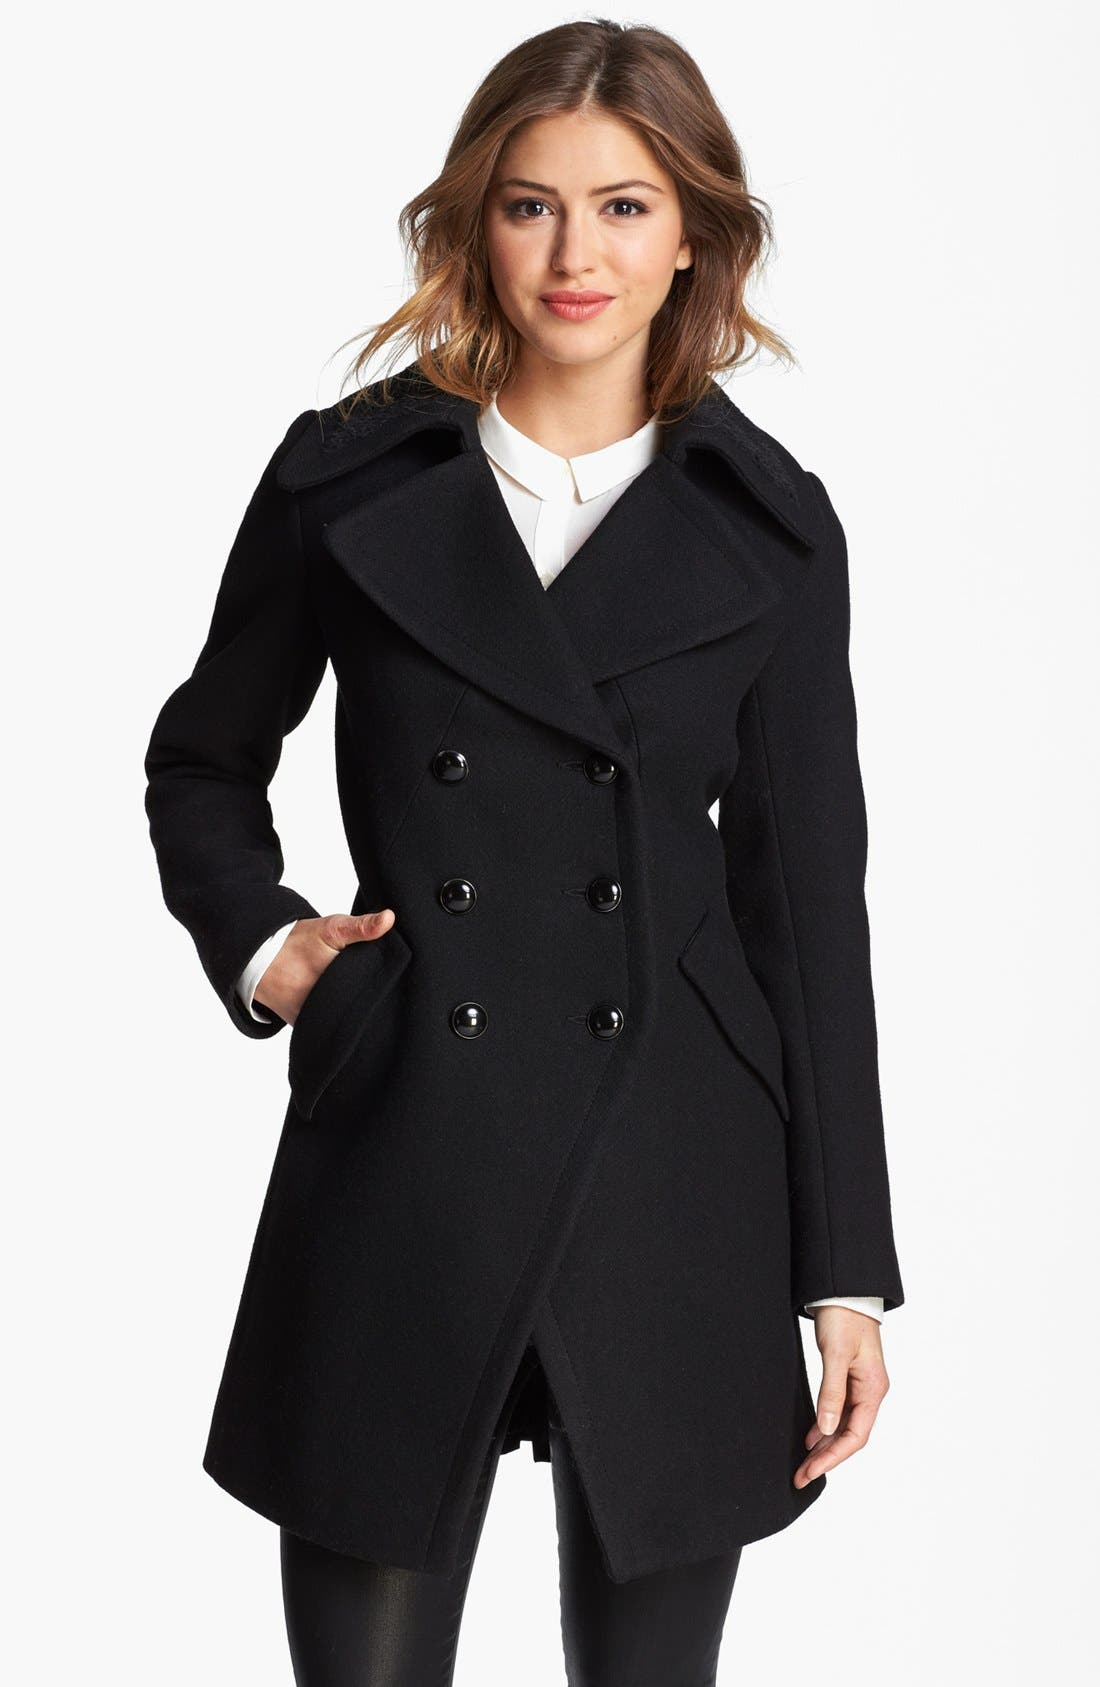 Alternate Image 1 Selected - Trina Turk Double Breasted Officer's Coat (Regular & Petite)